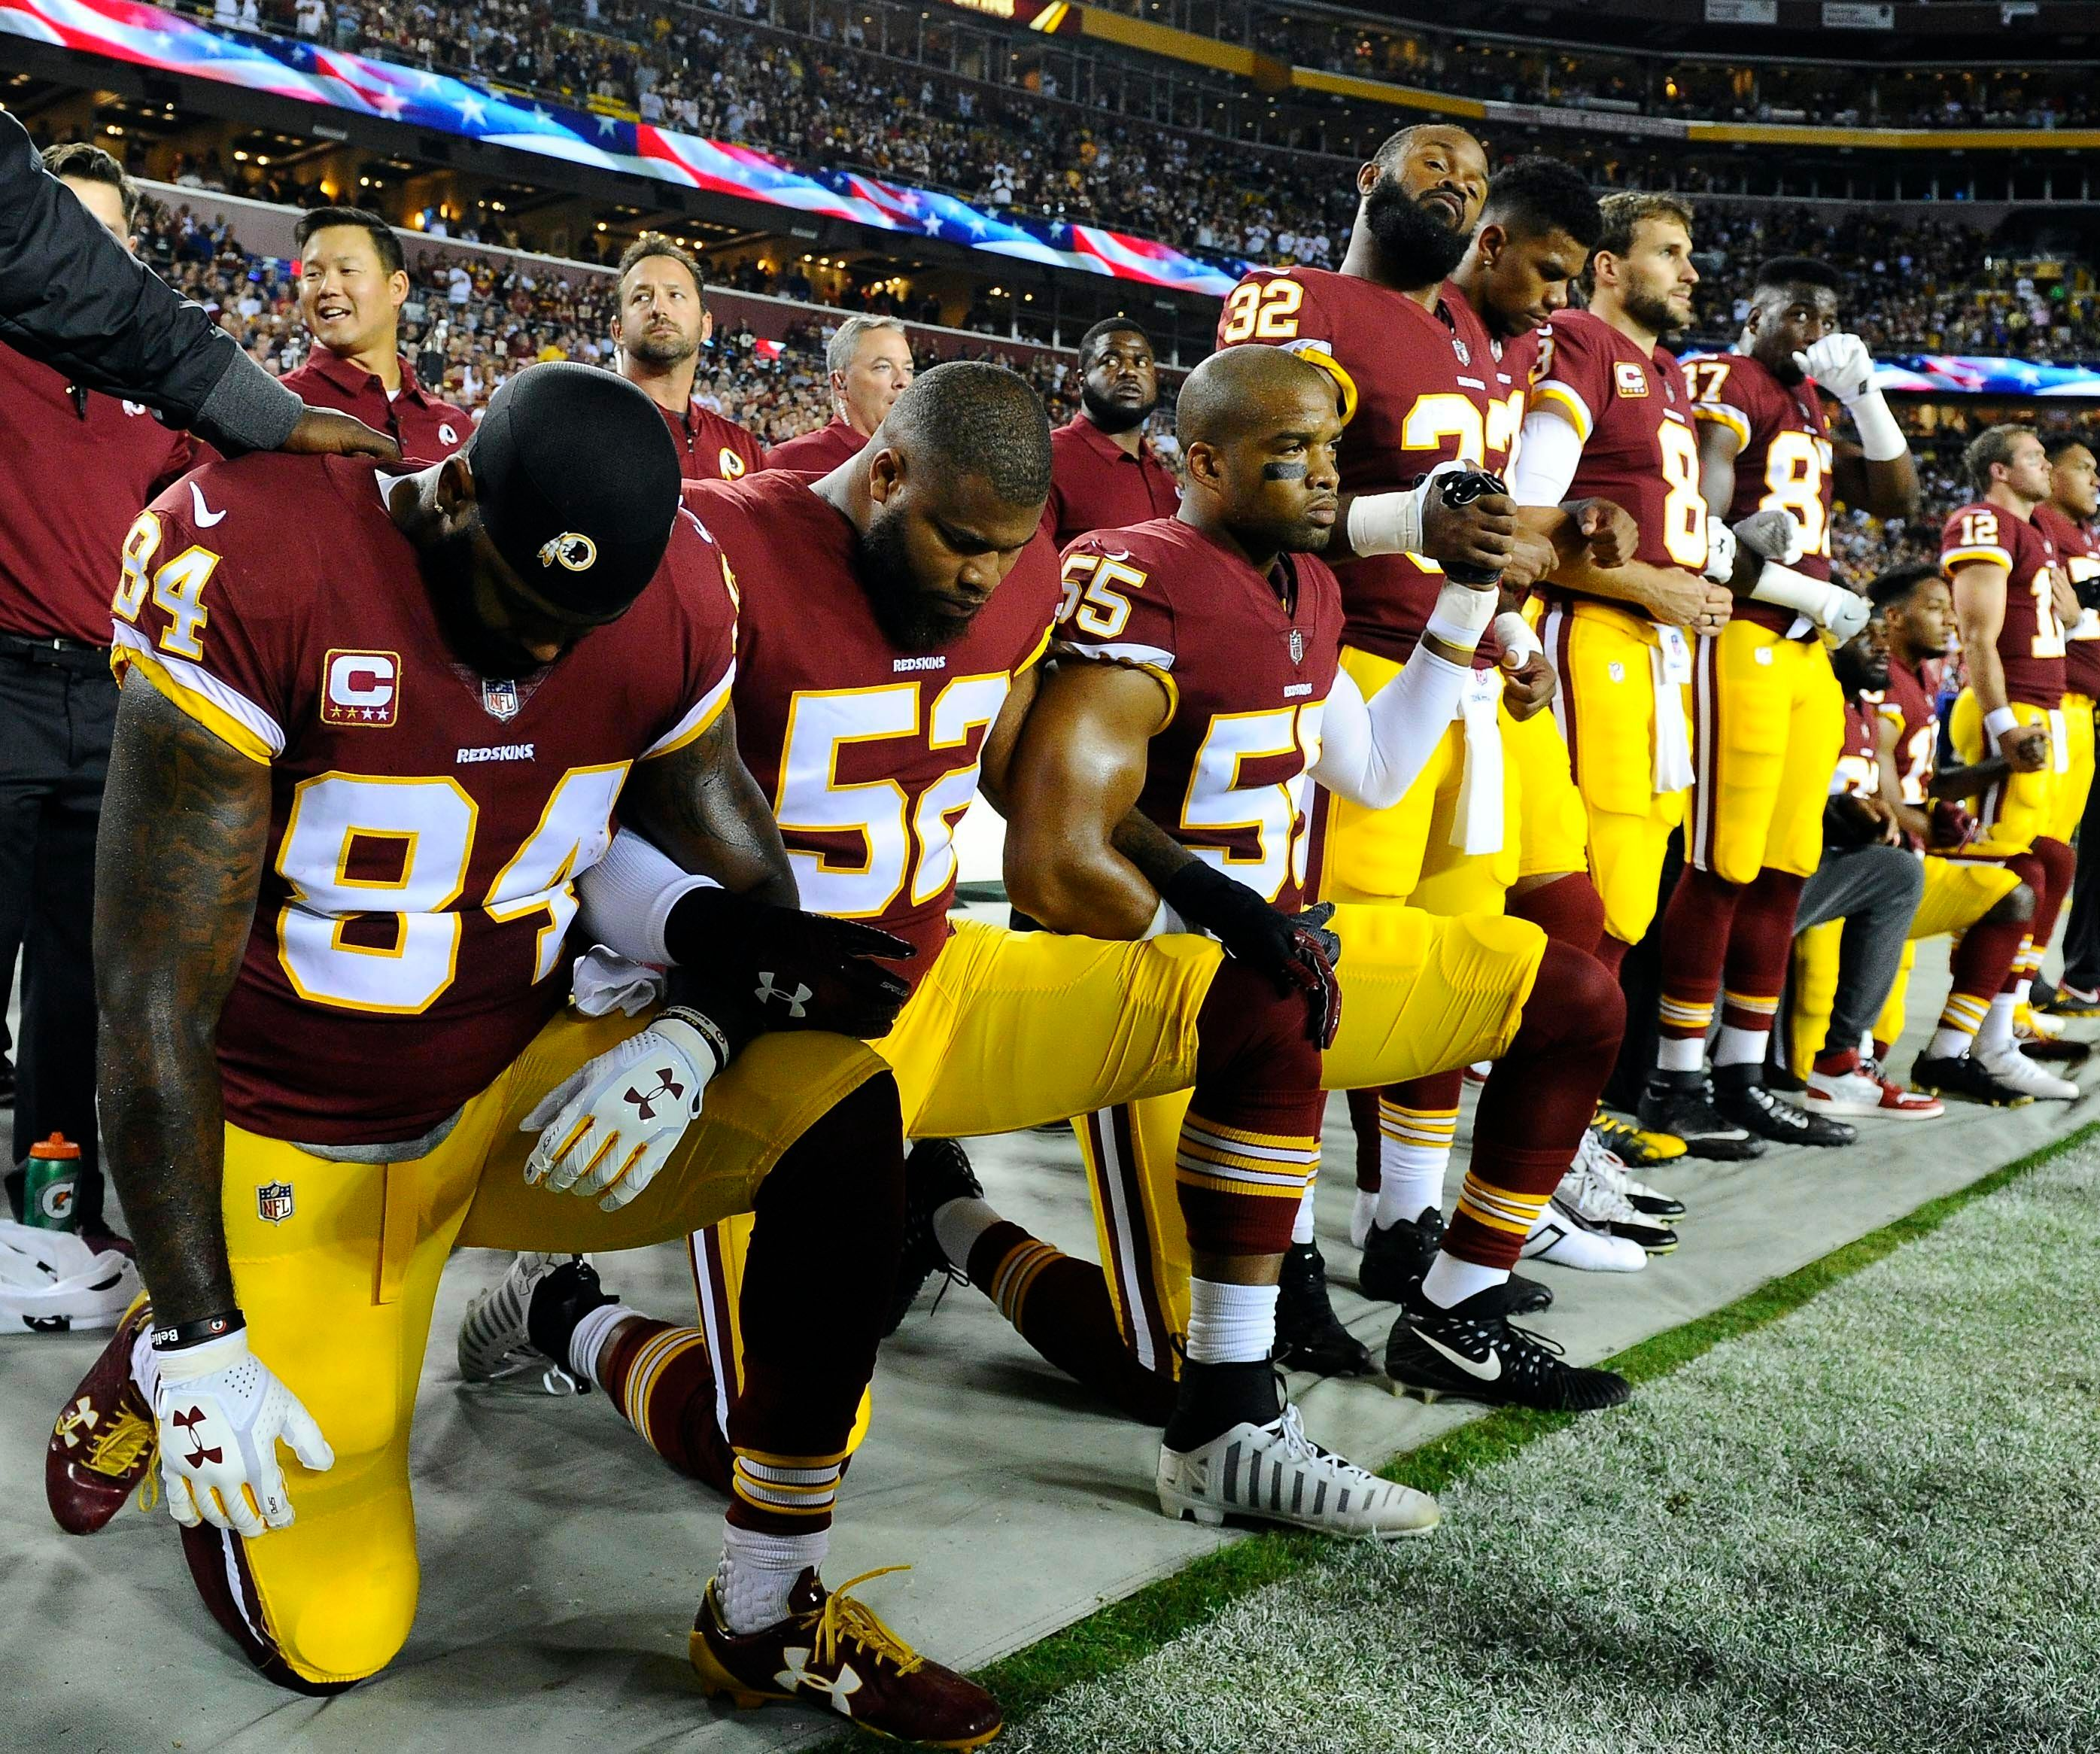 Sep 24, 2017; Landover, MD, USA; Washington Redskins tight end Niles Paul (84) and linebacker Ryan Anderson (52) and Washington Redskins linebacker Chris Carter (55) kneel with teammates during the playing of the national anthem before the game between the Washington Redskins and the Oakland Raiders at FedEx Field. Mandatory Credit: Brad Mills-USA TODAY Sports     TPX IMAGES OF THE DAY